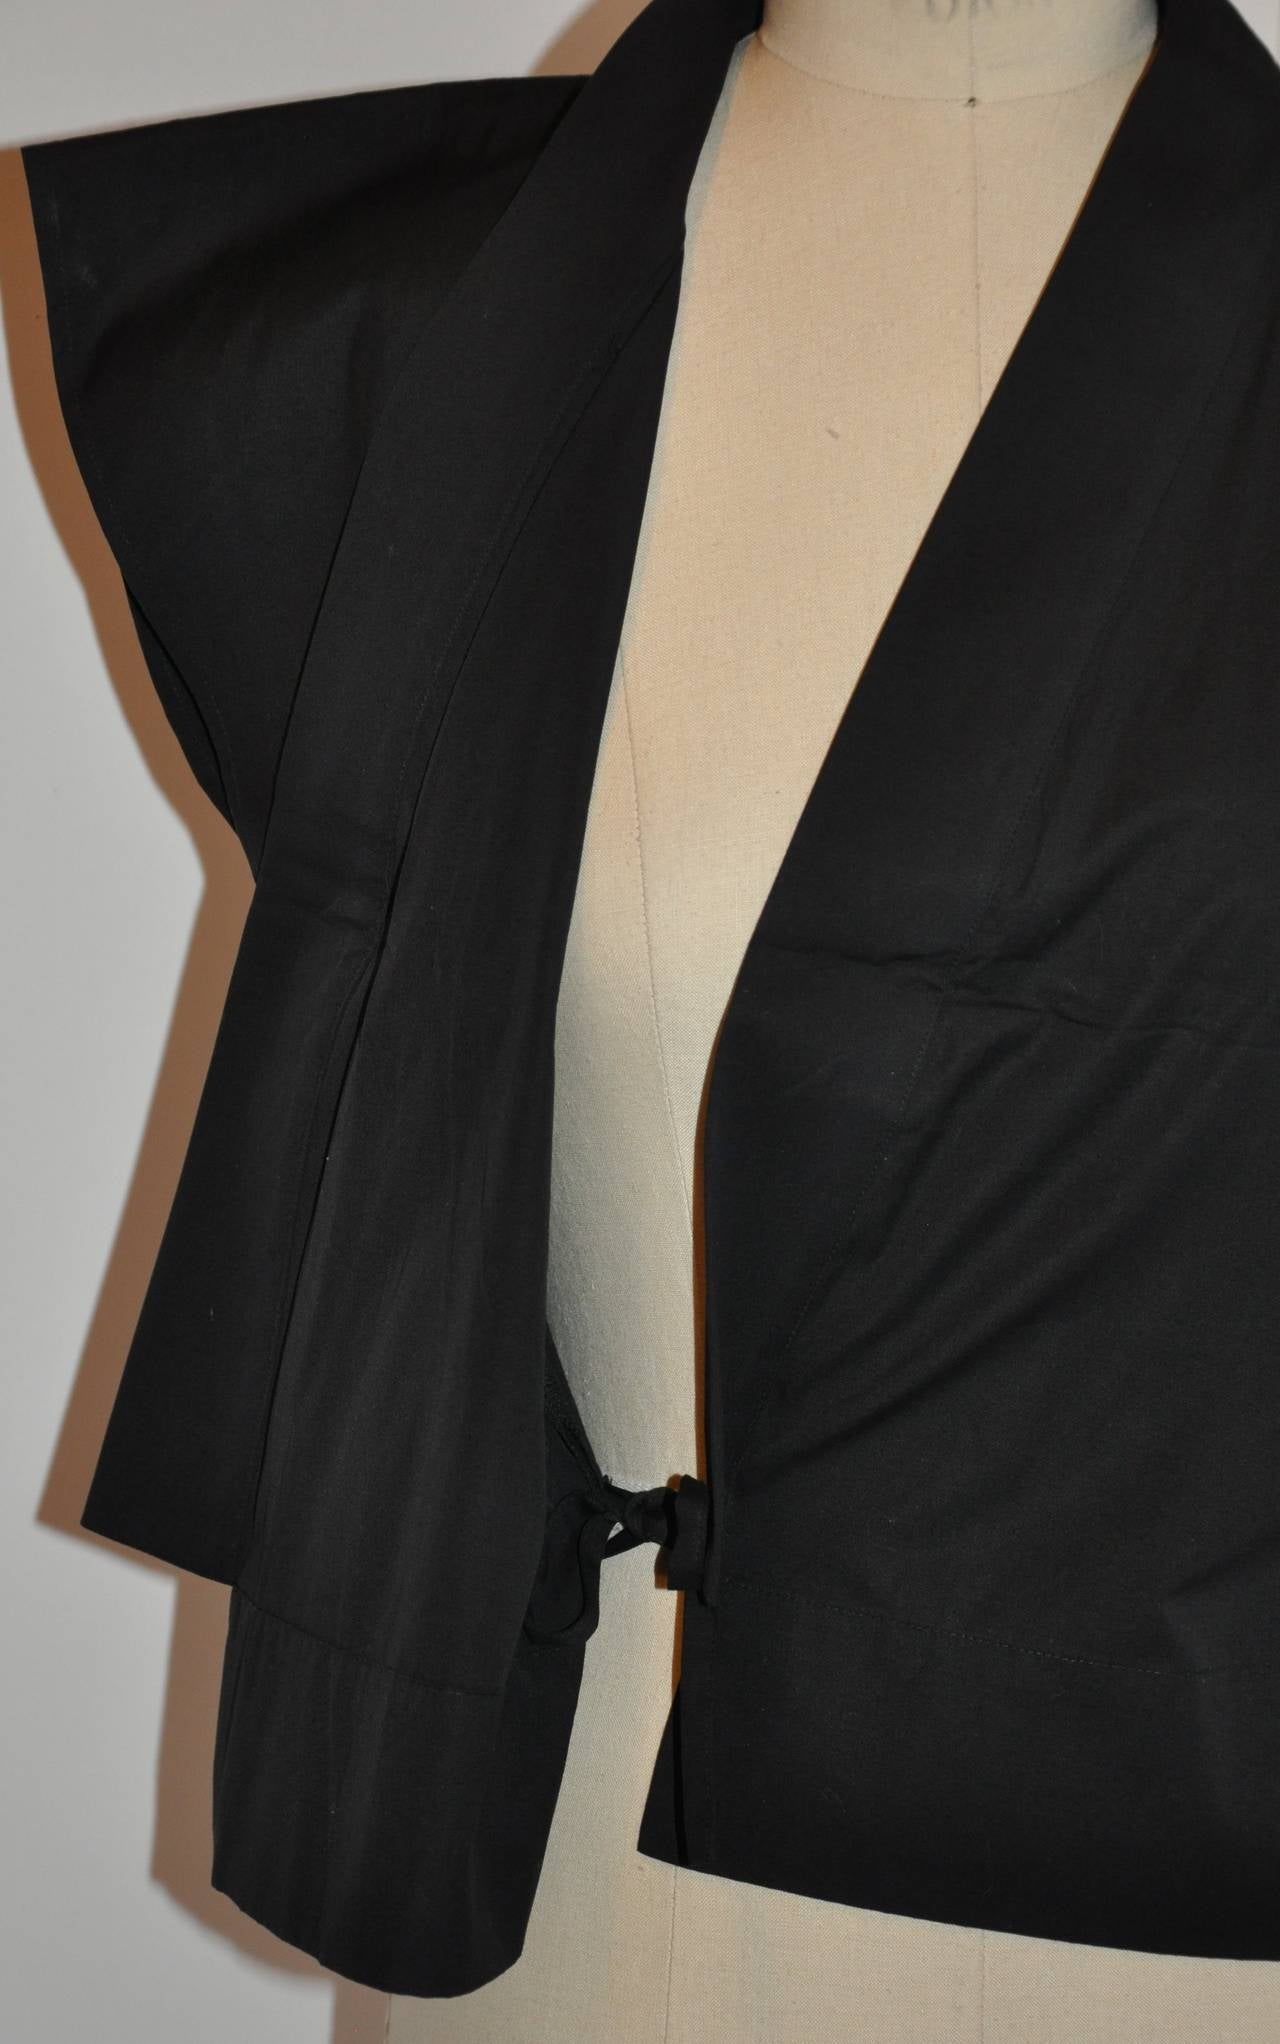 Agnes B' Black Kimono-Style Wrap Top In Excellent Condition For Sale In New York, NY